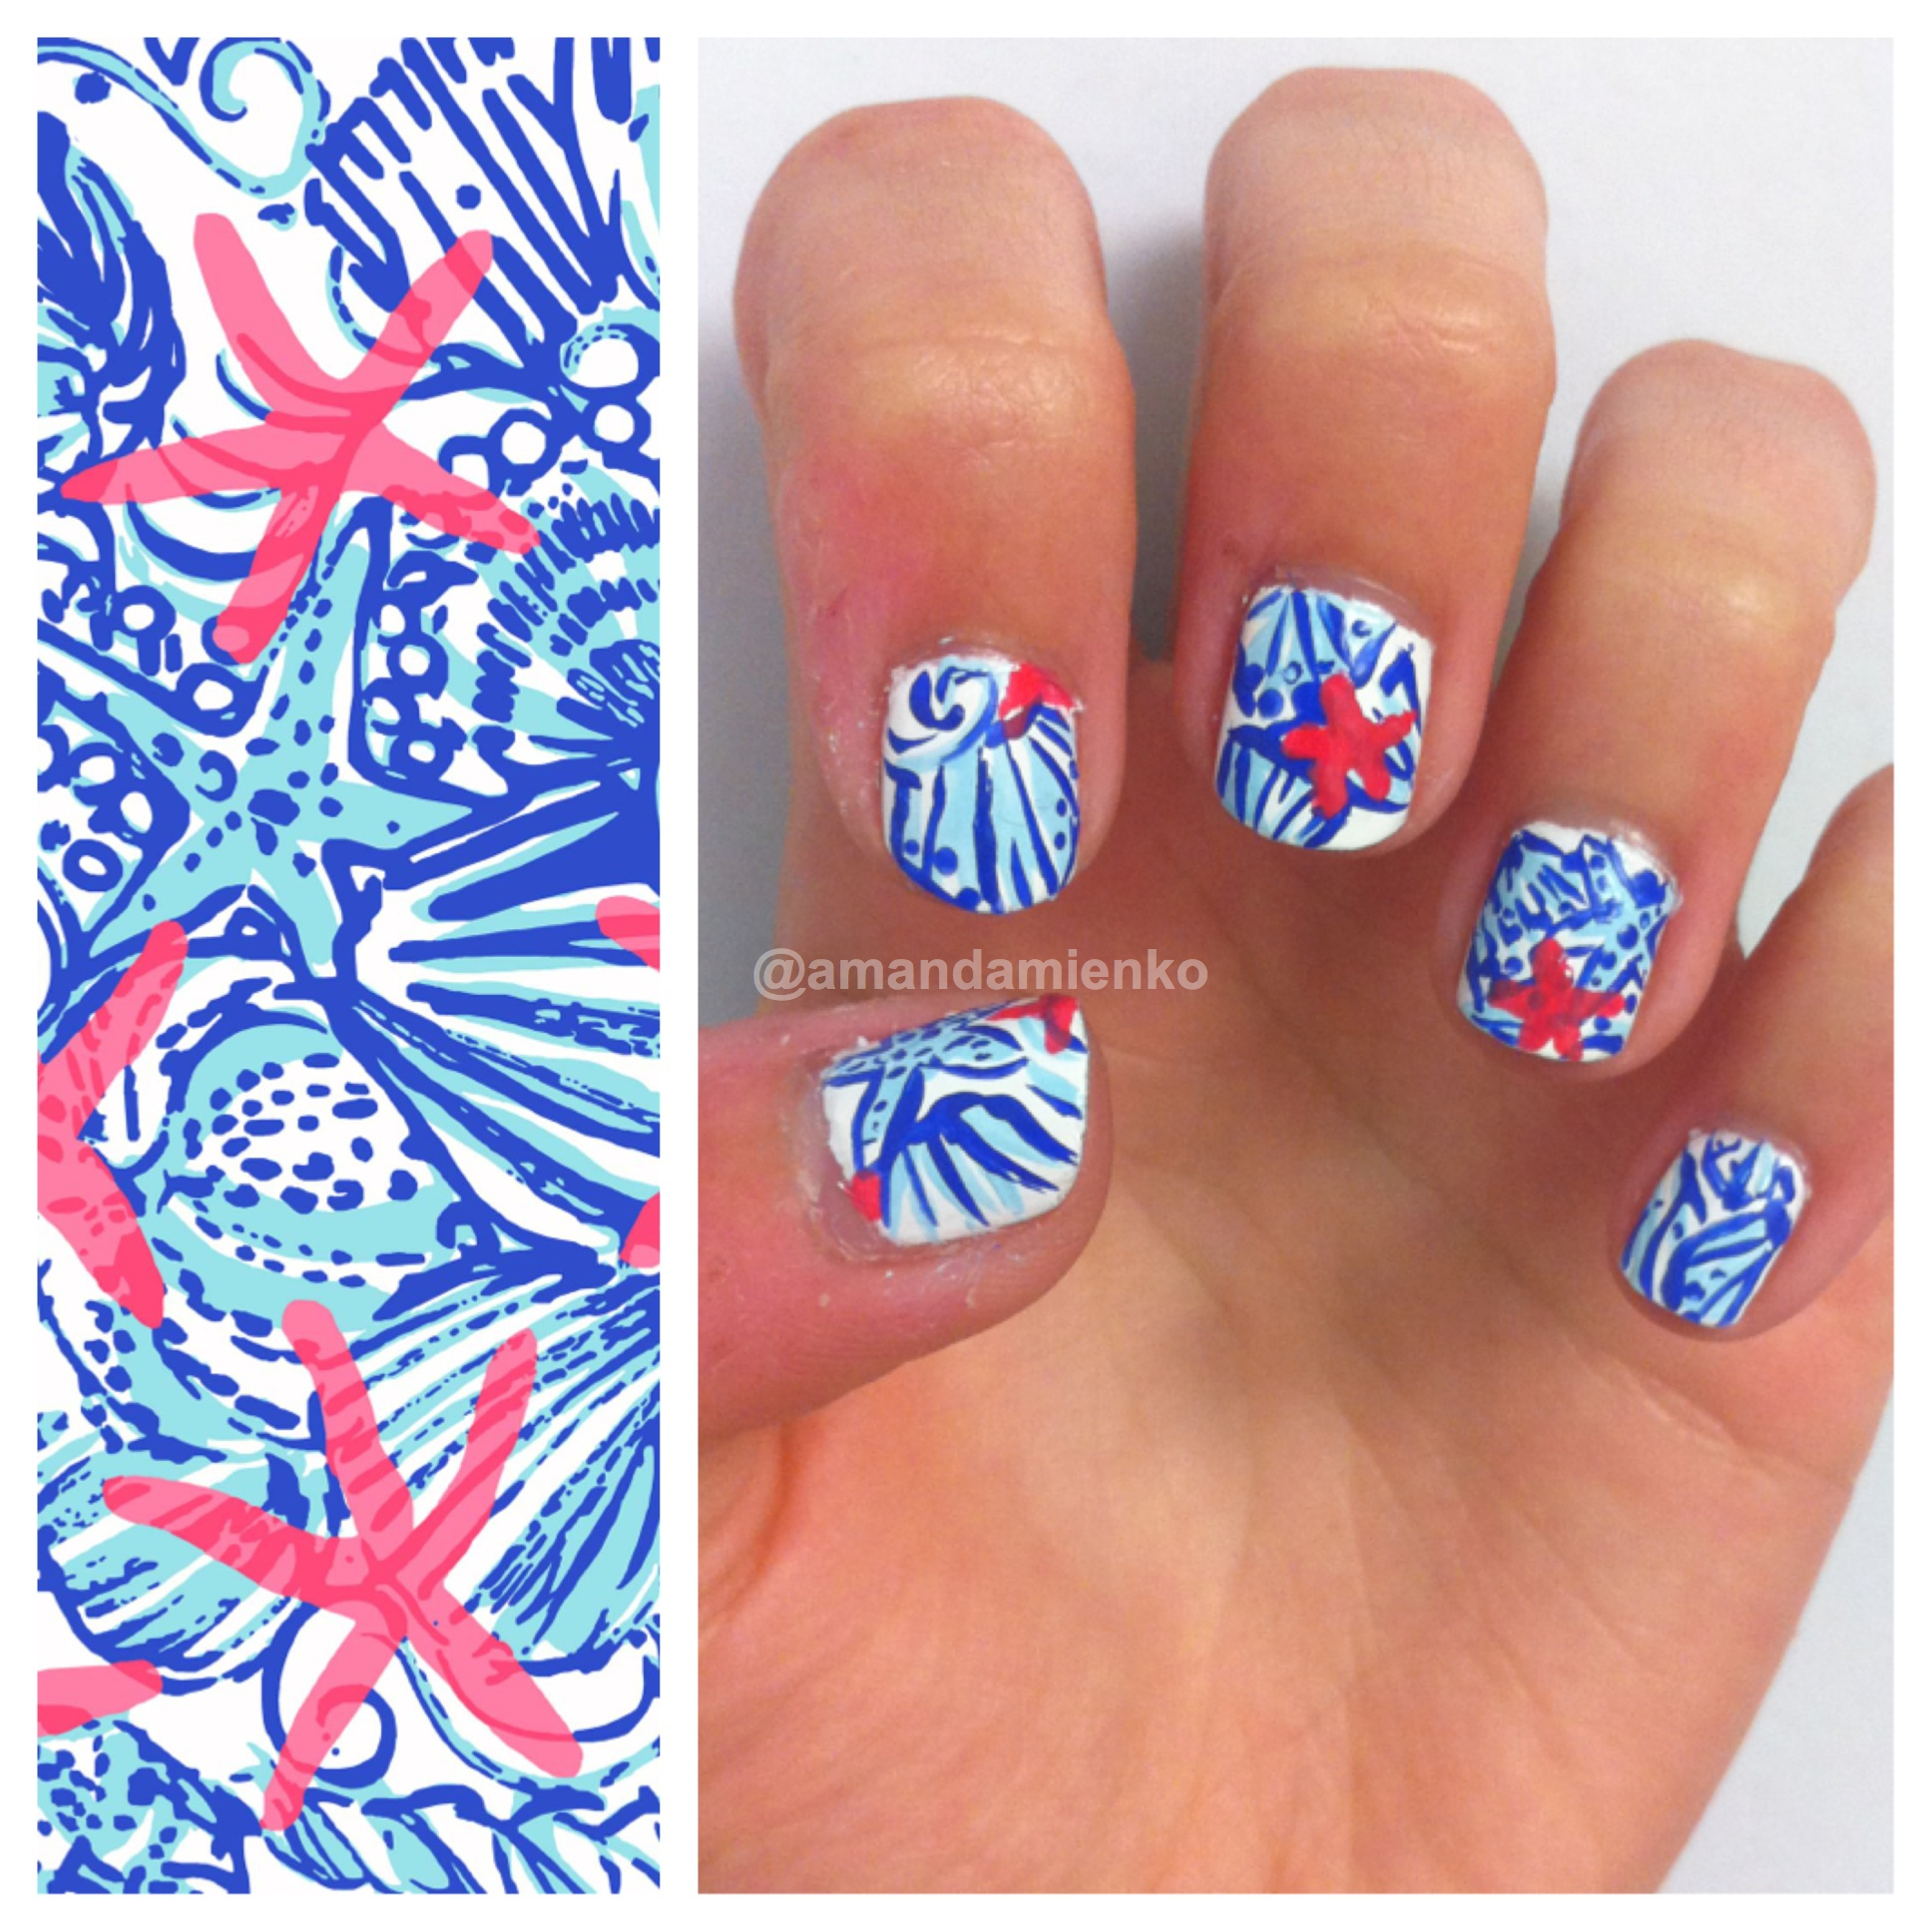 My Lilly Pulitzer Nail Art Design Inspired By The Print She Shells